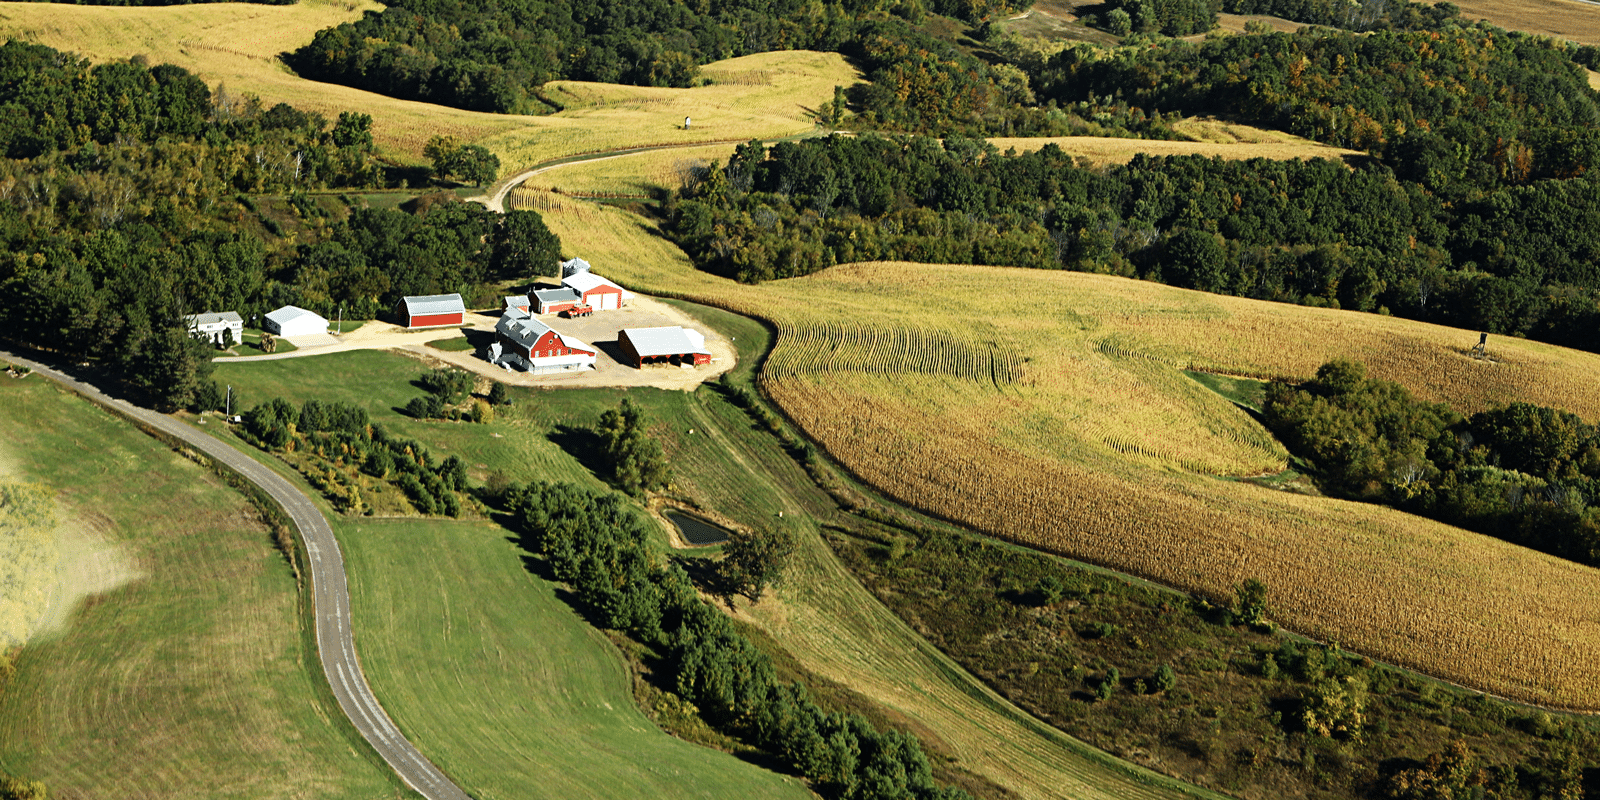 Aerial of photograph of crops, woodland, and farm buildings